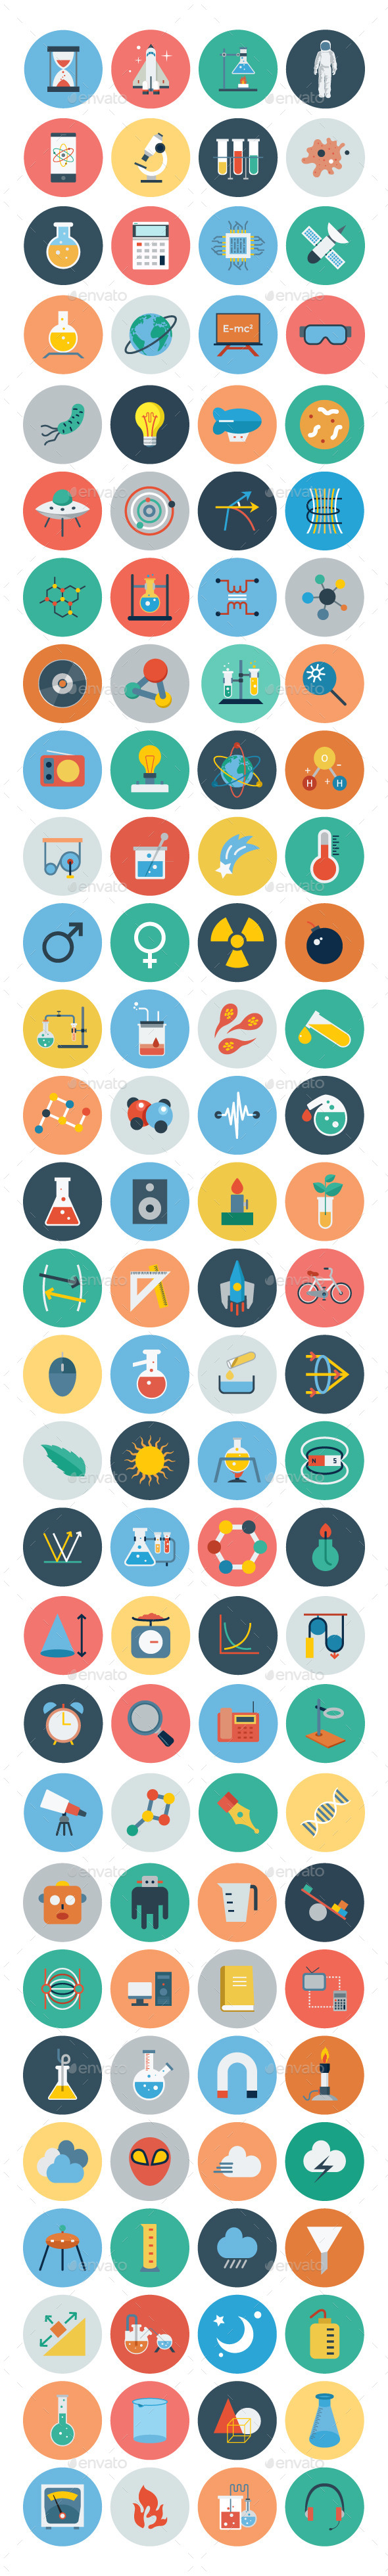 100+ Science & Technology Flat Icons - Technology Icons